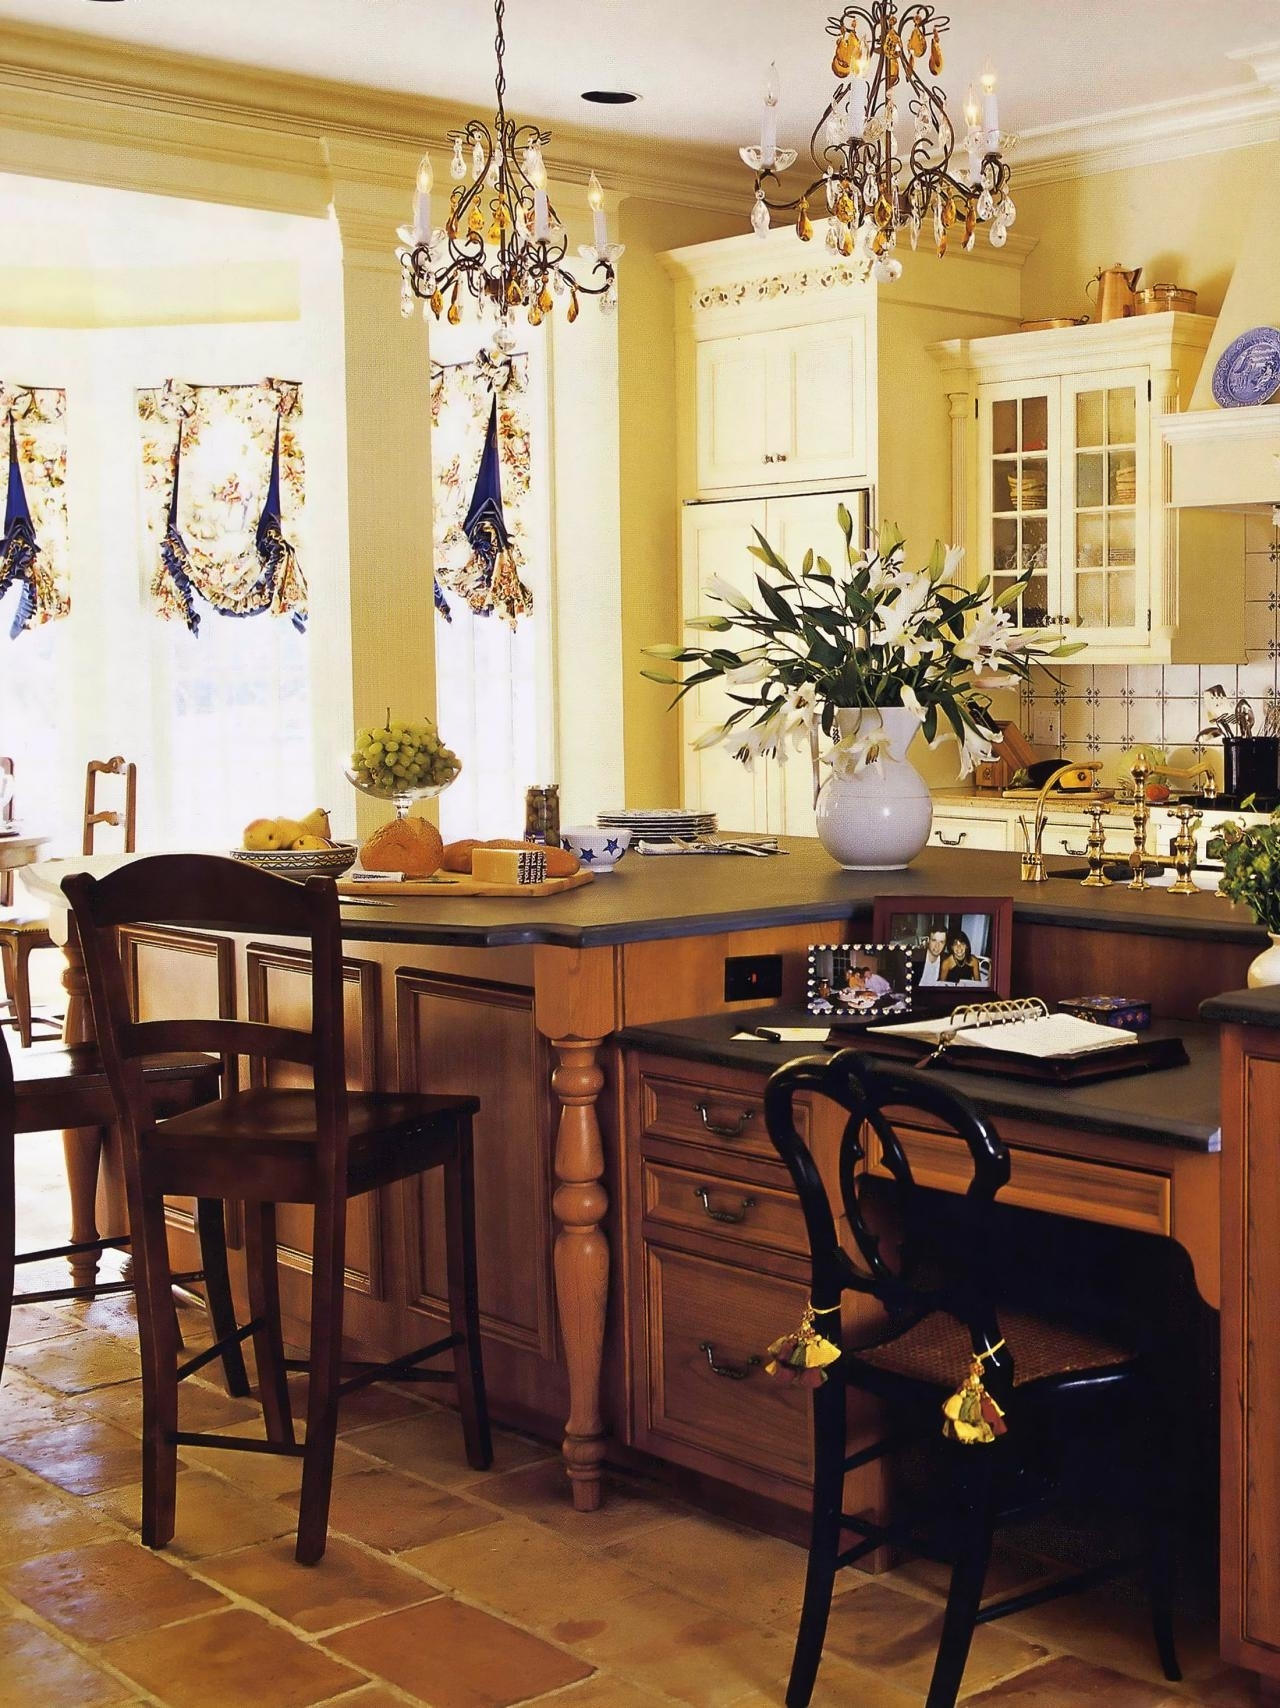 Preferred Kitchen : Drum Pendant Chandelier Customize Kitchen Lighting With Inside Small Rustic Kitchen Chandeliers (View 9 of 15)